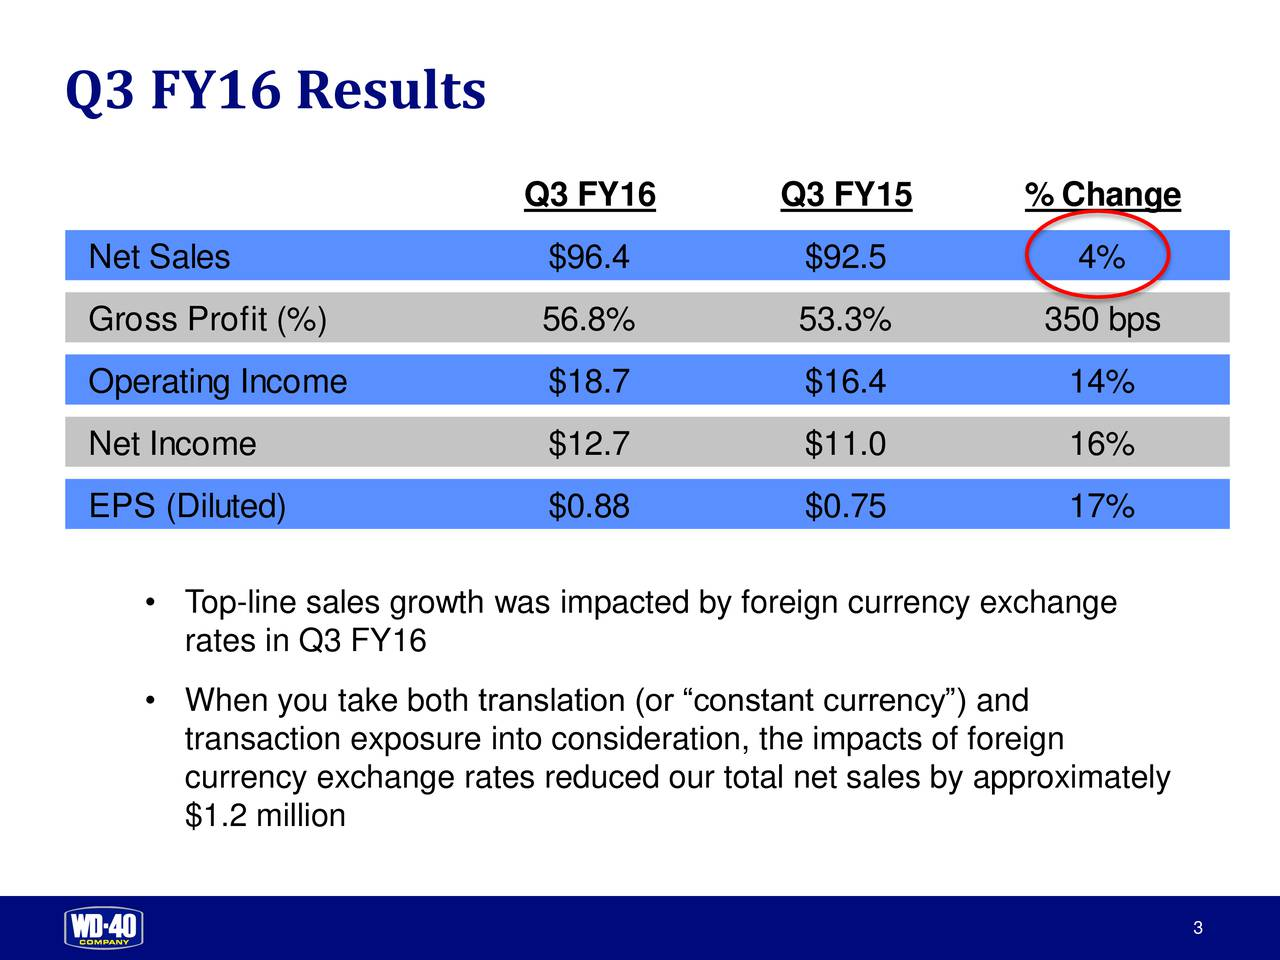 Q3 FY16 Q3 FY15 % Change Net Sales $96.4 $92.5 4% Gross Profit (%) 56.8% 53.3% 350 bps Operating Income $18.7 $16.4 14% Net Income $12.7 $11.0 16% EPS (Diluted) $0.88 $0.75 17% Top-line sales growth was impacted by foreign currency exchange rates in Q3 FY16 When you take both translation (or constant currency) and transaction exposure into consideration, the impacts of foreign currency exchange rates reduced our total net sales by approximately $1.2 million 3